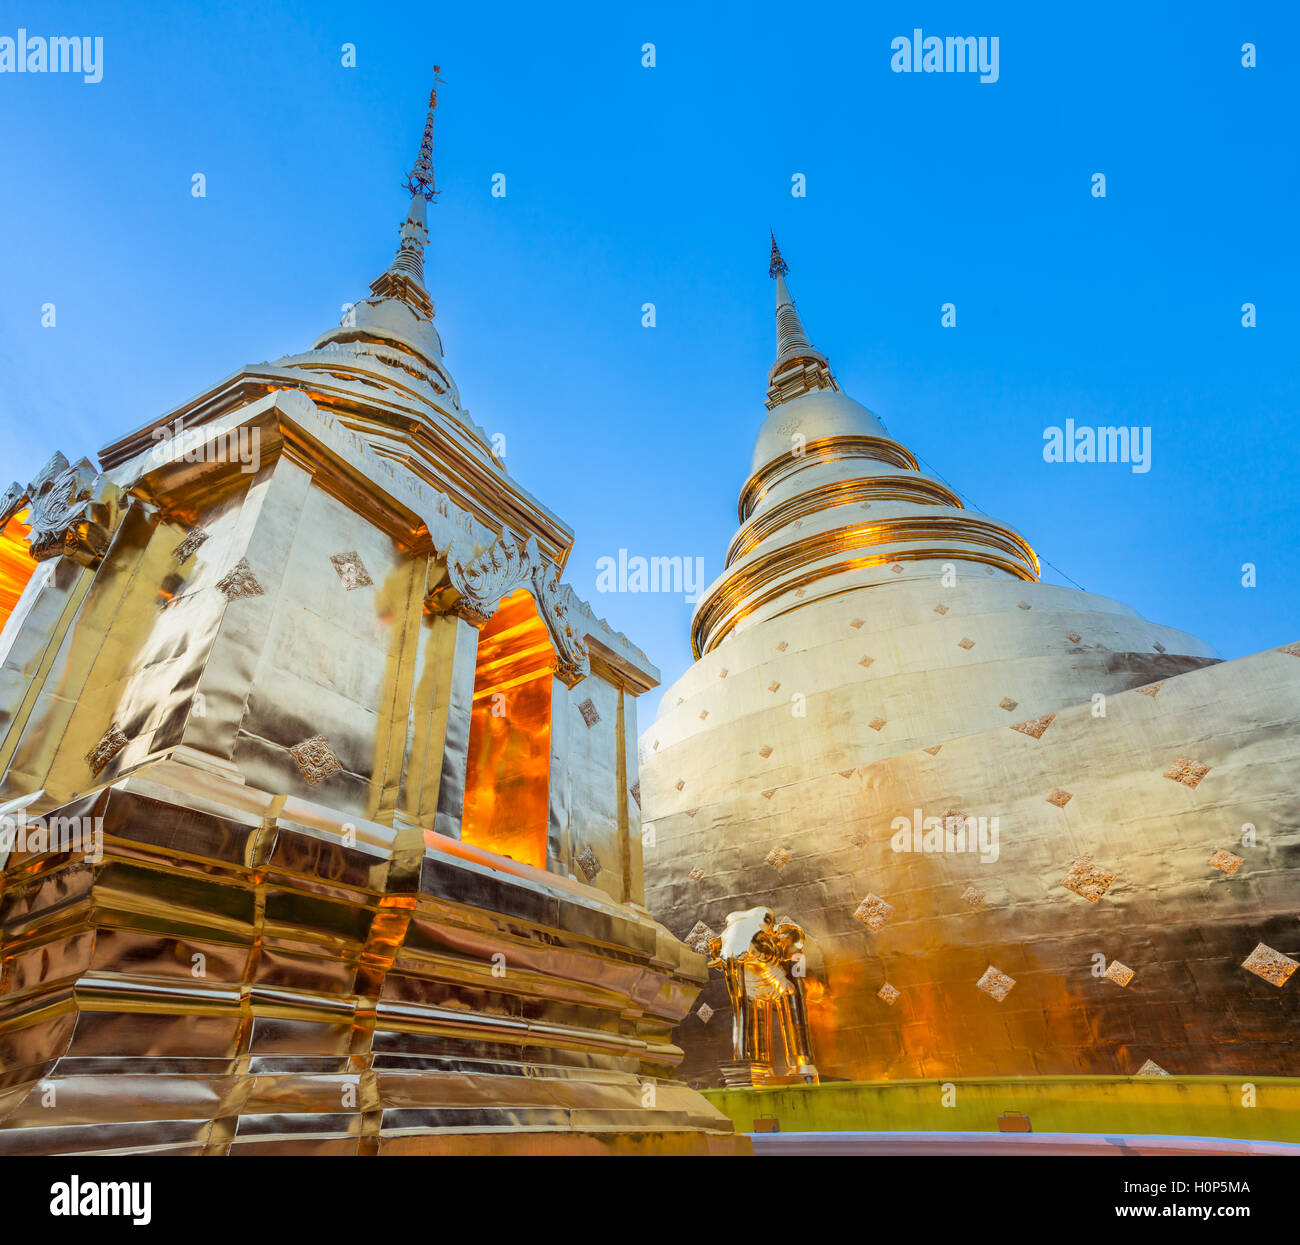 Dusk View of the golden chedi (stupa) of Wat Phra Singh temple, the most revered temple in Chiang Mai, Thailand. - Stock Image